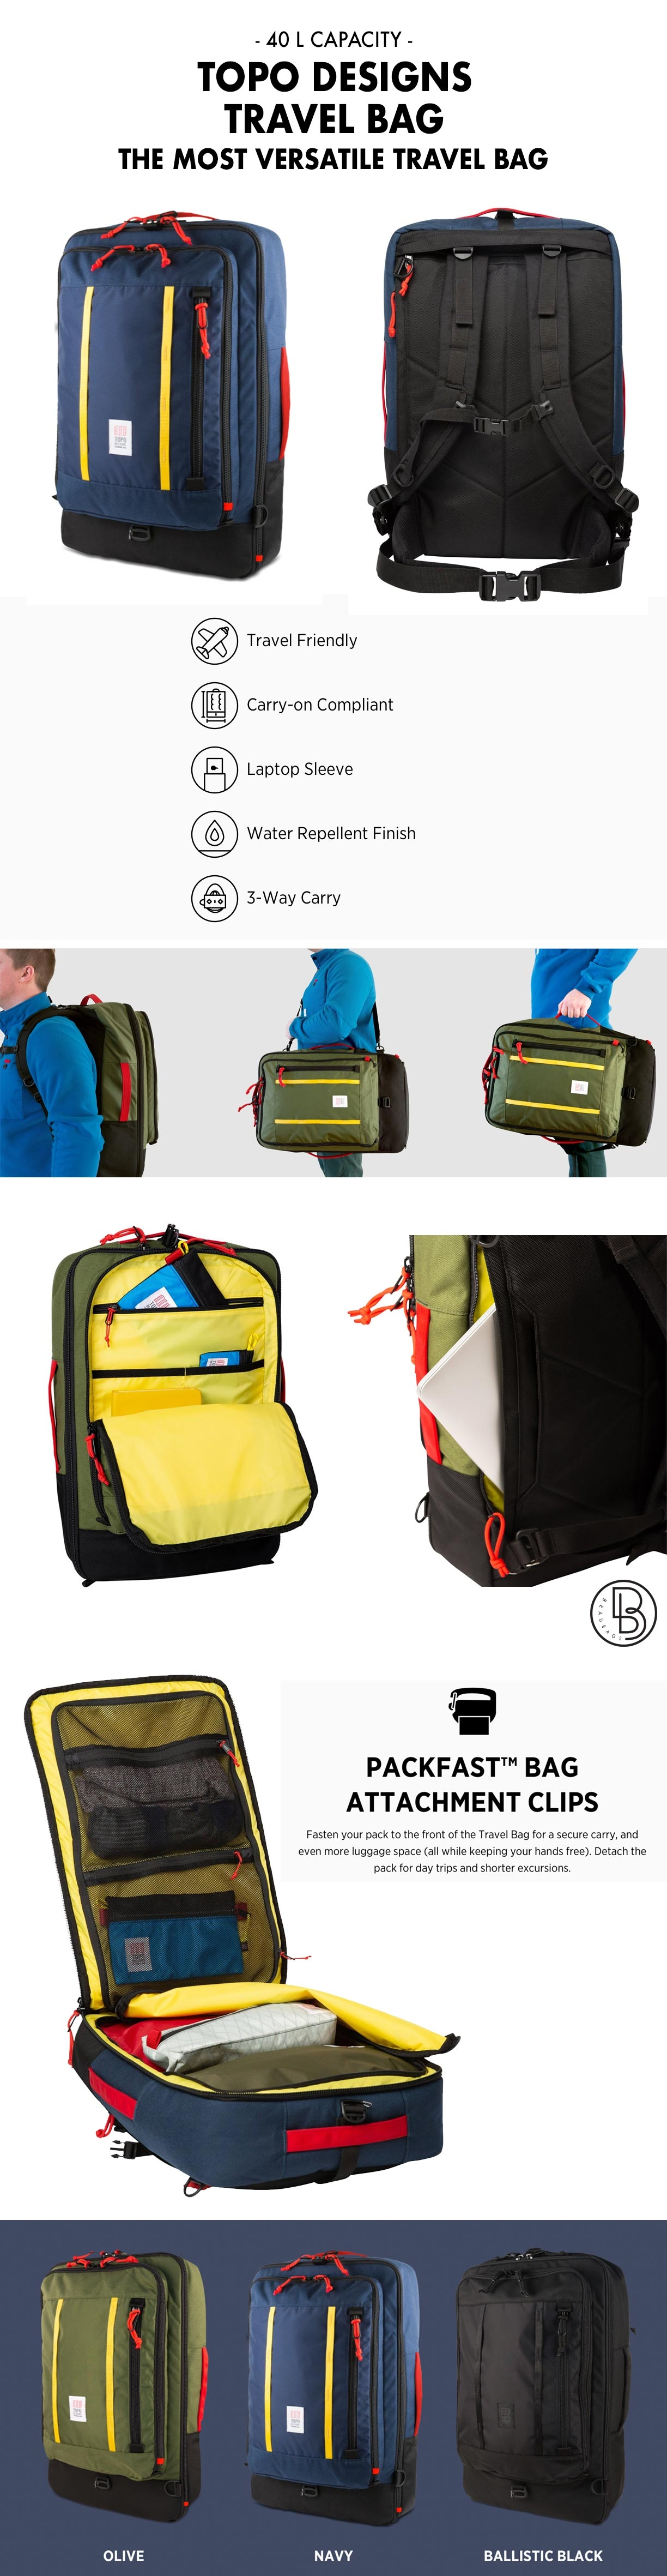 Topo Designs Travel Bag 40L product information